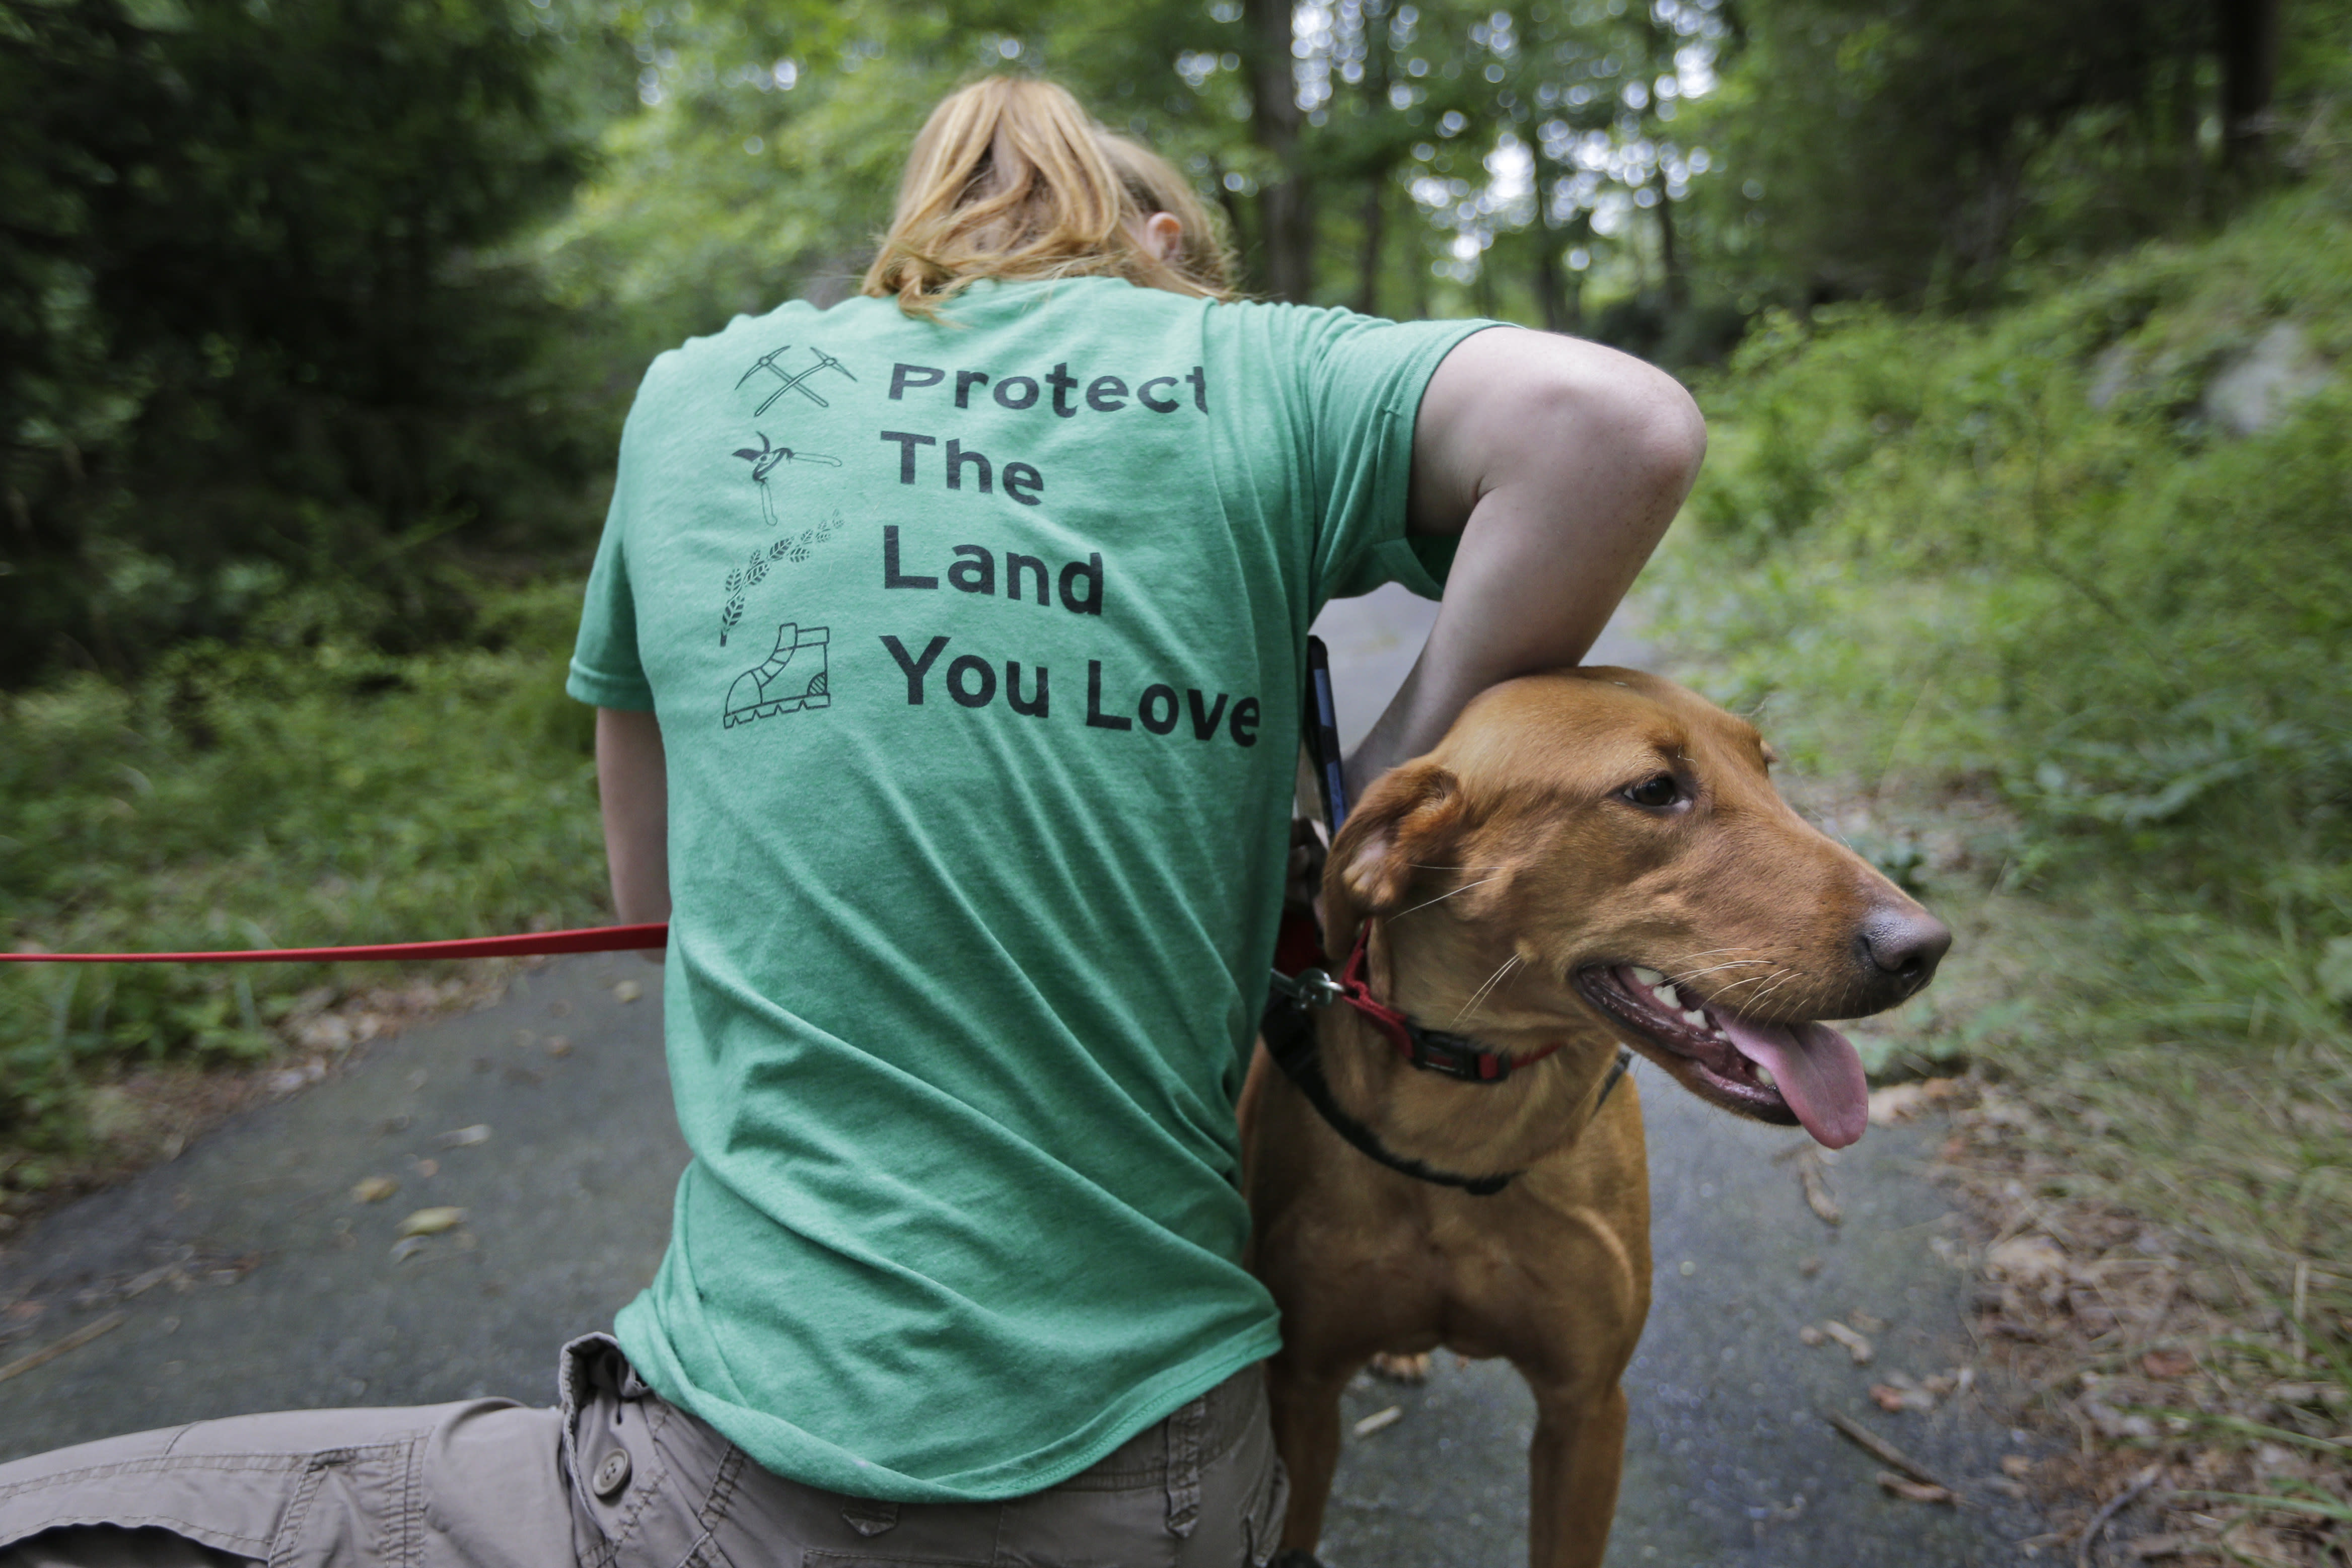 Arden Blumenthal, a NY/NJ Trails conference intern, puts a GPS in Dia's dog pack in Harriman State Park in Tuxedo, N.Y., Tuesday, Aug. 6, 2019. The nonprofit New York-New Jersey Trail Conference has trained Dia to find Scotch broom plants in two state parks 50 miles (80 kilometers) north of New York City. The invasive shrub is widespread in the Pacific Northwest but new to New York, and land managers hope to eradicate it before it gets established. (AP Photo/Seth Wenig)